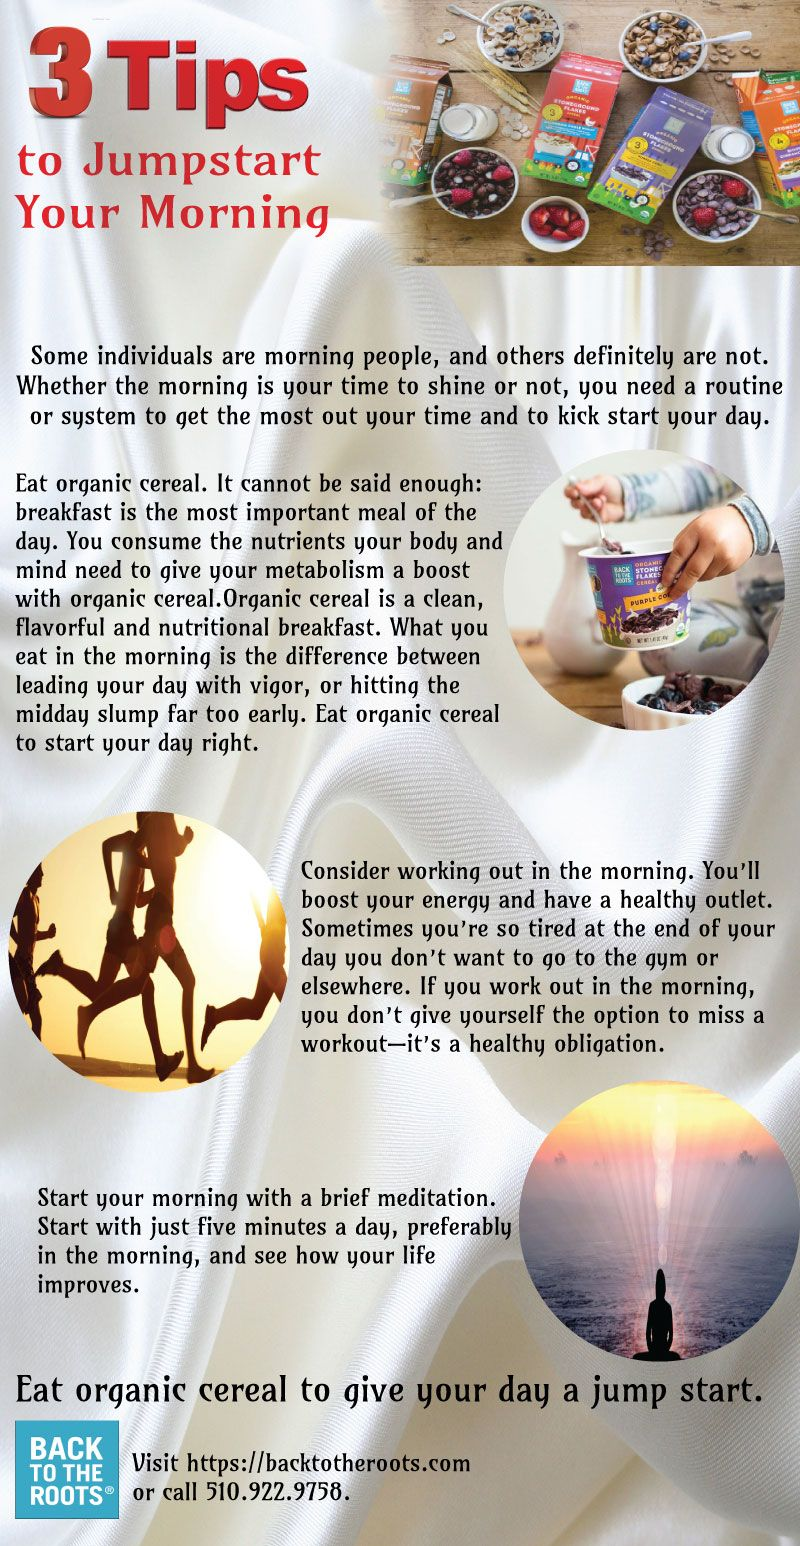 What you eat in the morning is the difference between leading your day with vigor, or hitting the midday slump far too early. Log on http://backtotheroots.com/